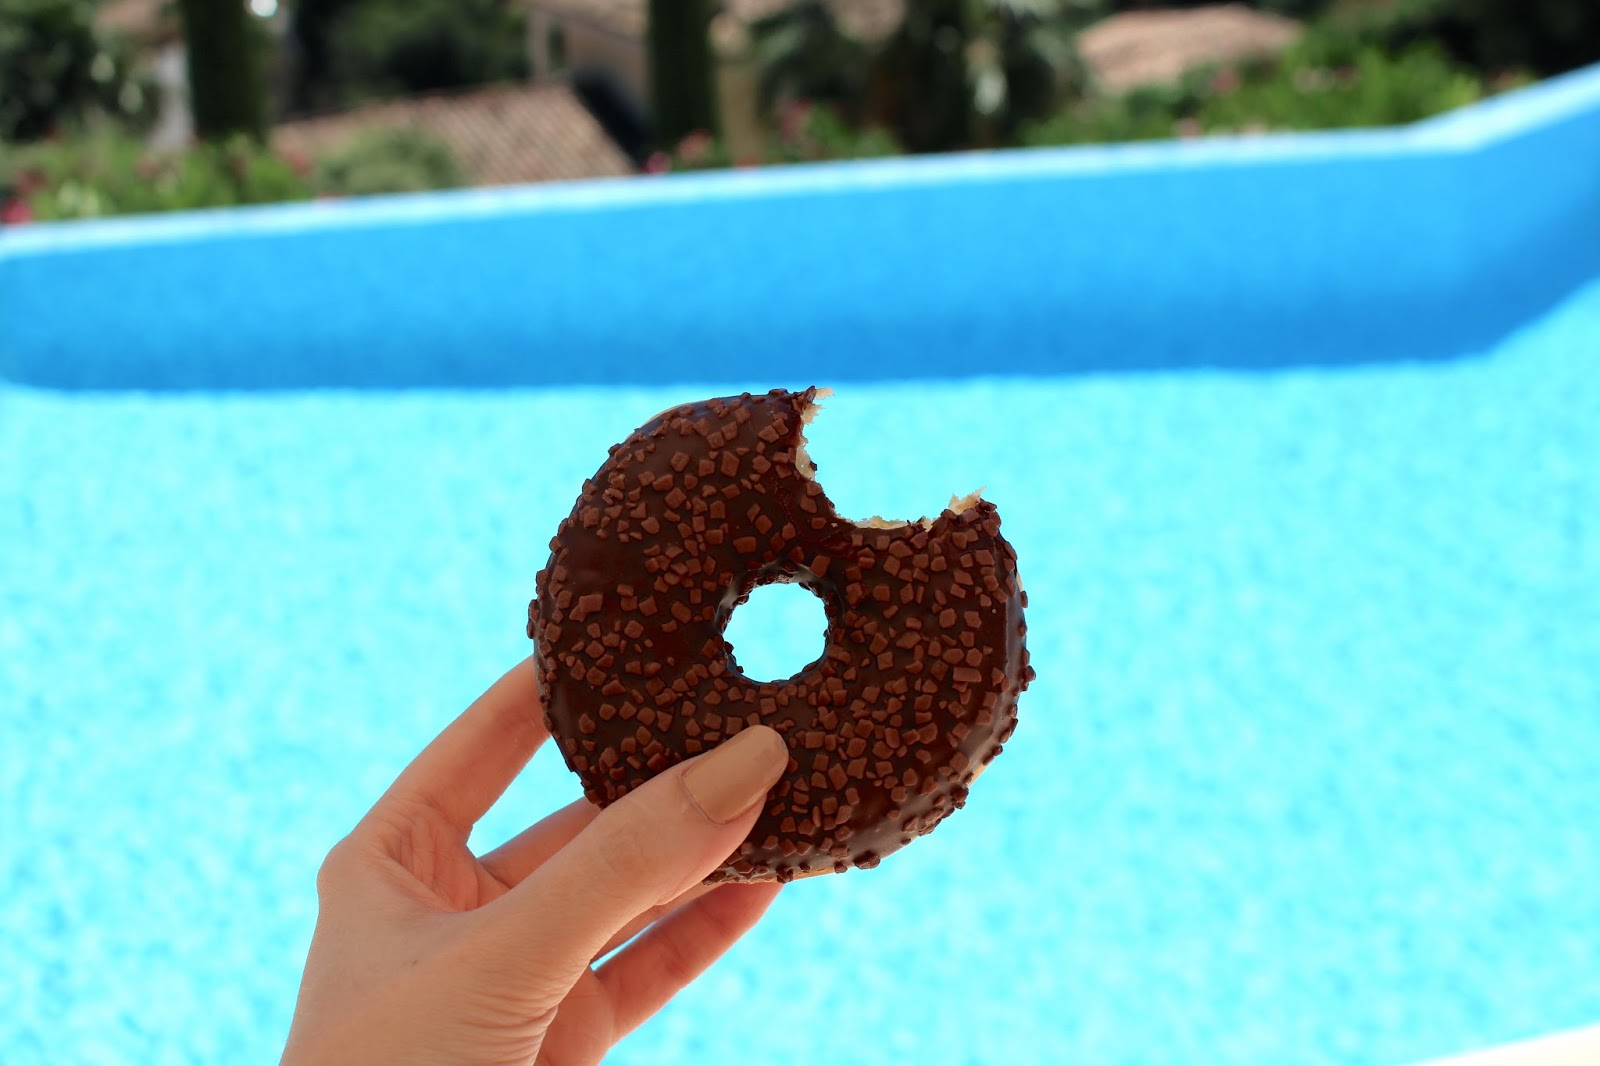 Chocolate doughnut with a bite out of it